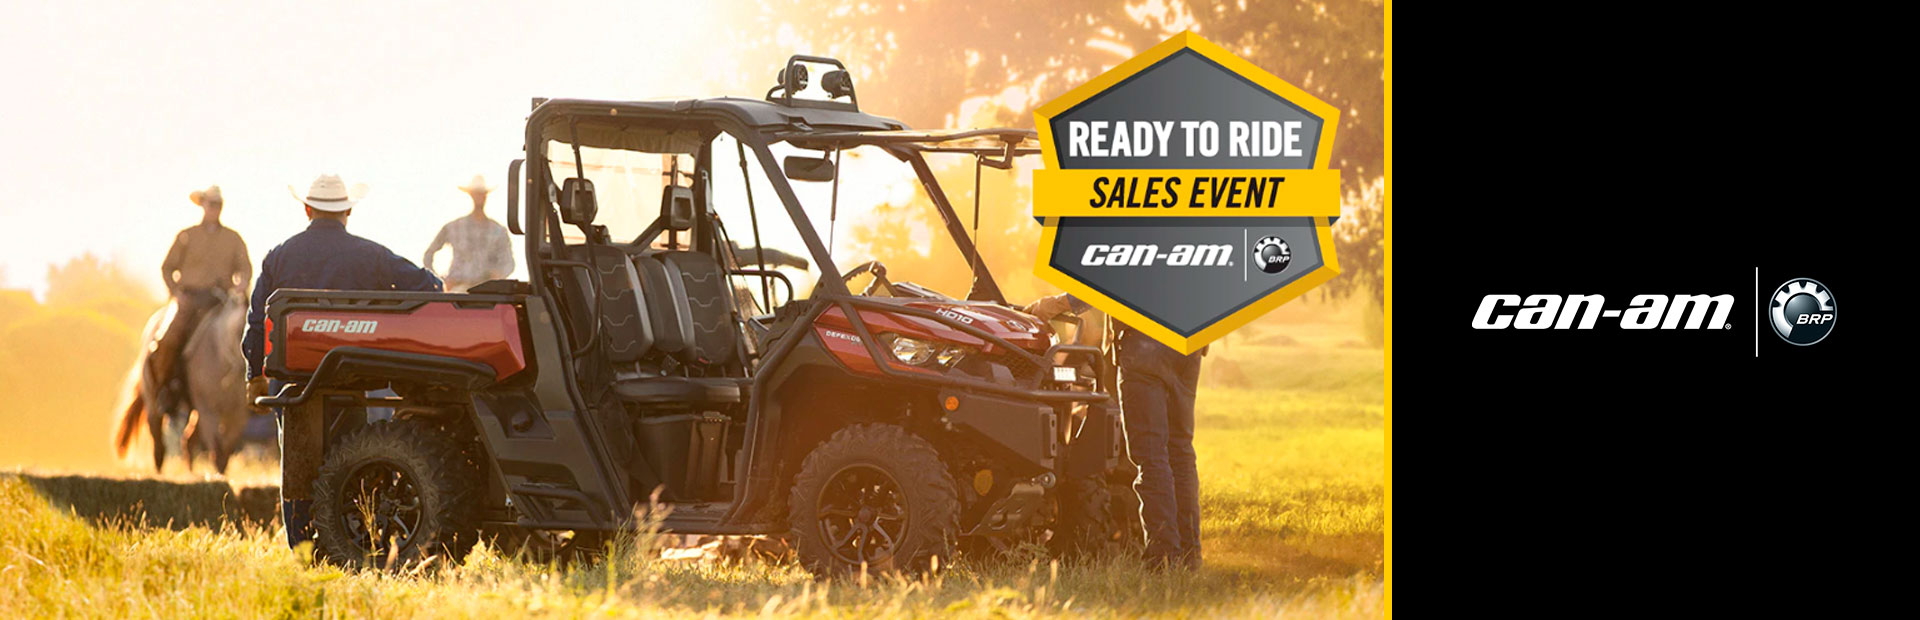 Can-Am: Ready to Ride Sales Event - Defender